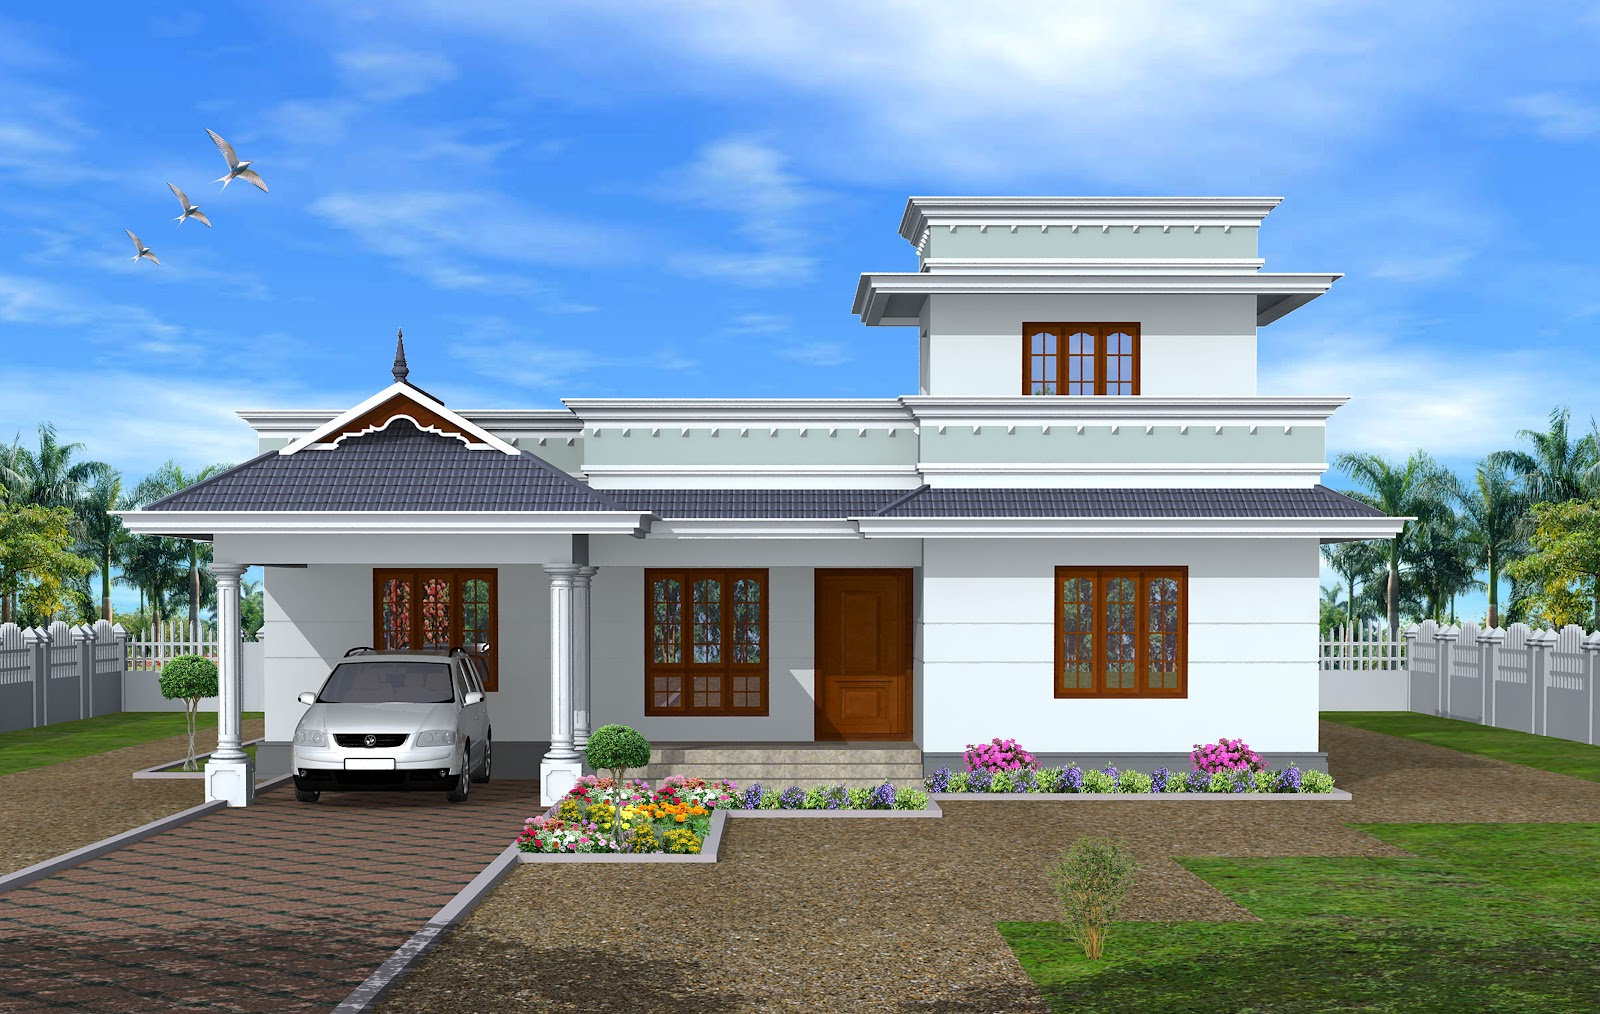 Green homes construction single floor kerala model house for House plans with photos in kerala style